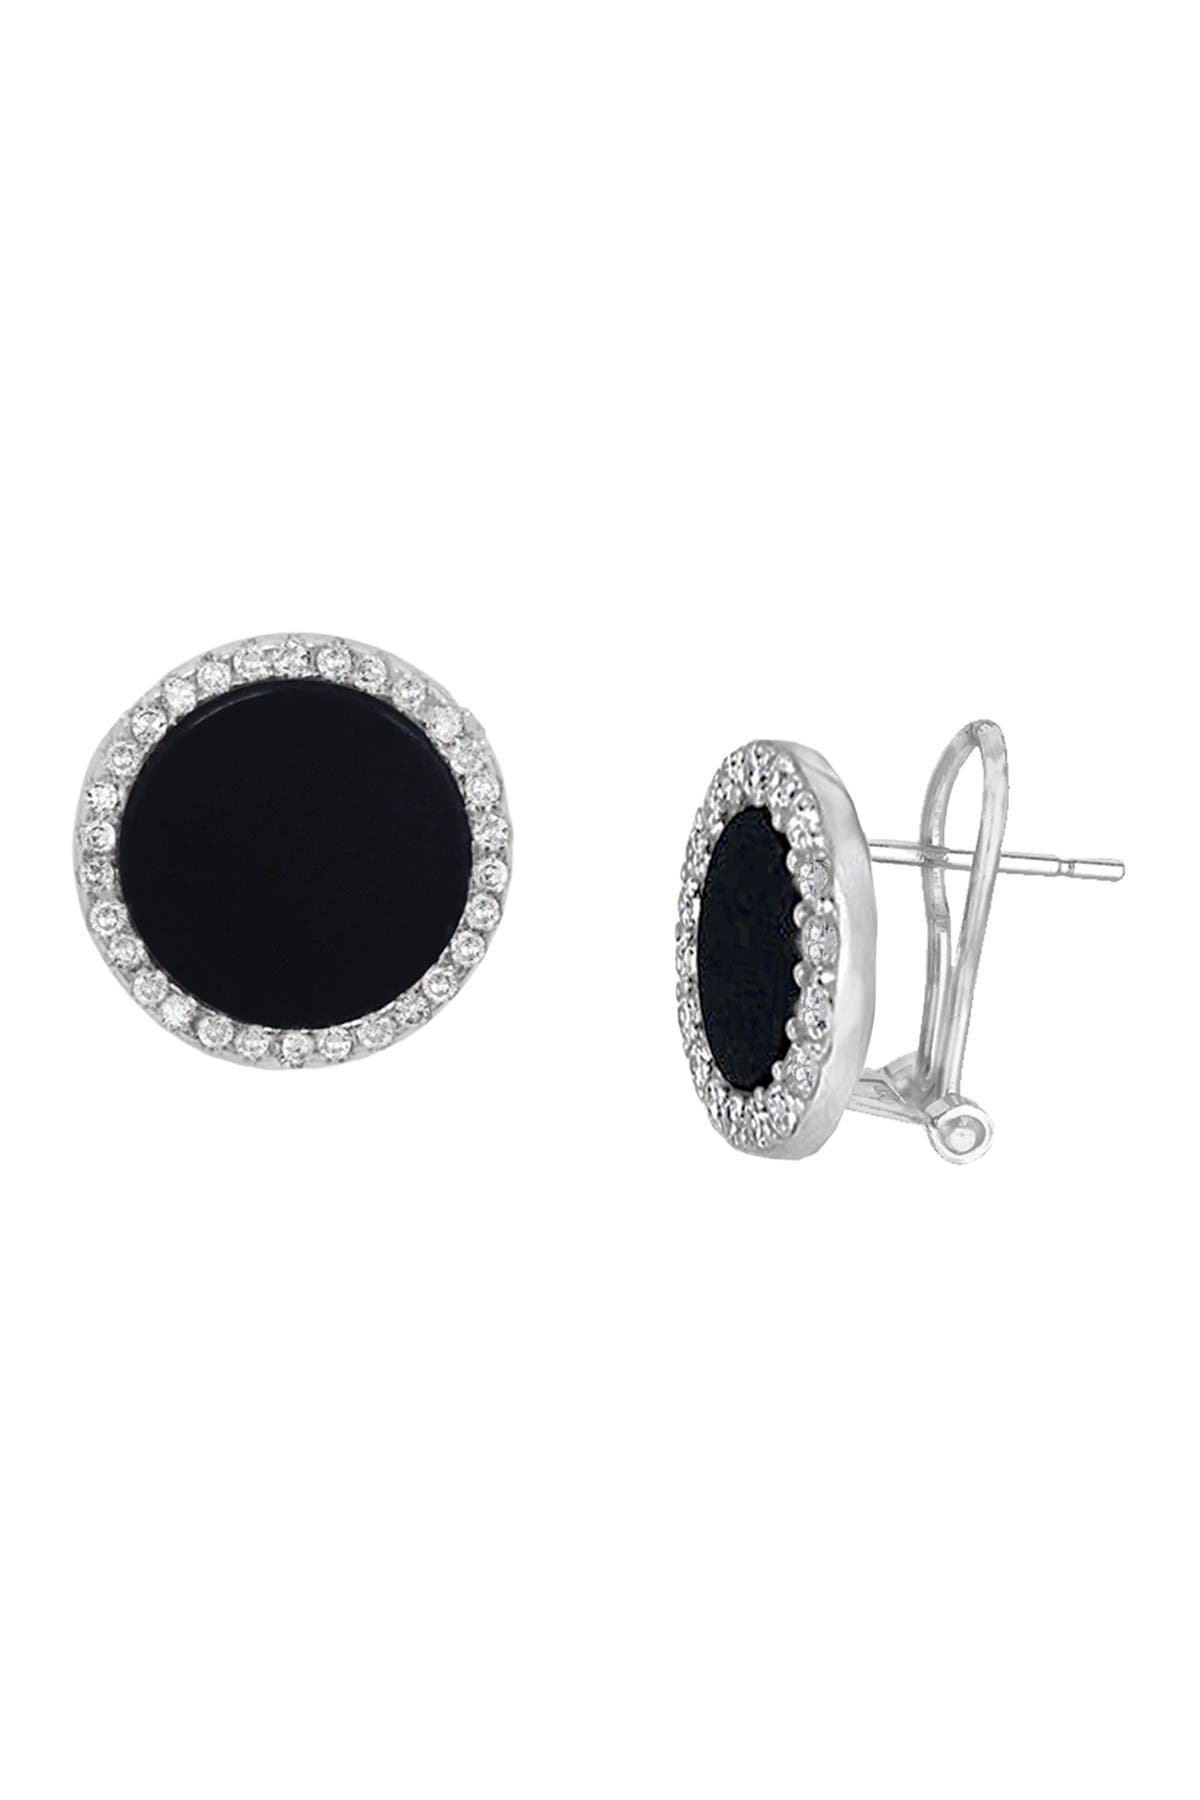 Image of Savvy Cie Sterling Silver Black Onyx & Cubic Zirconia Halo Stud Earrings